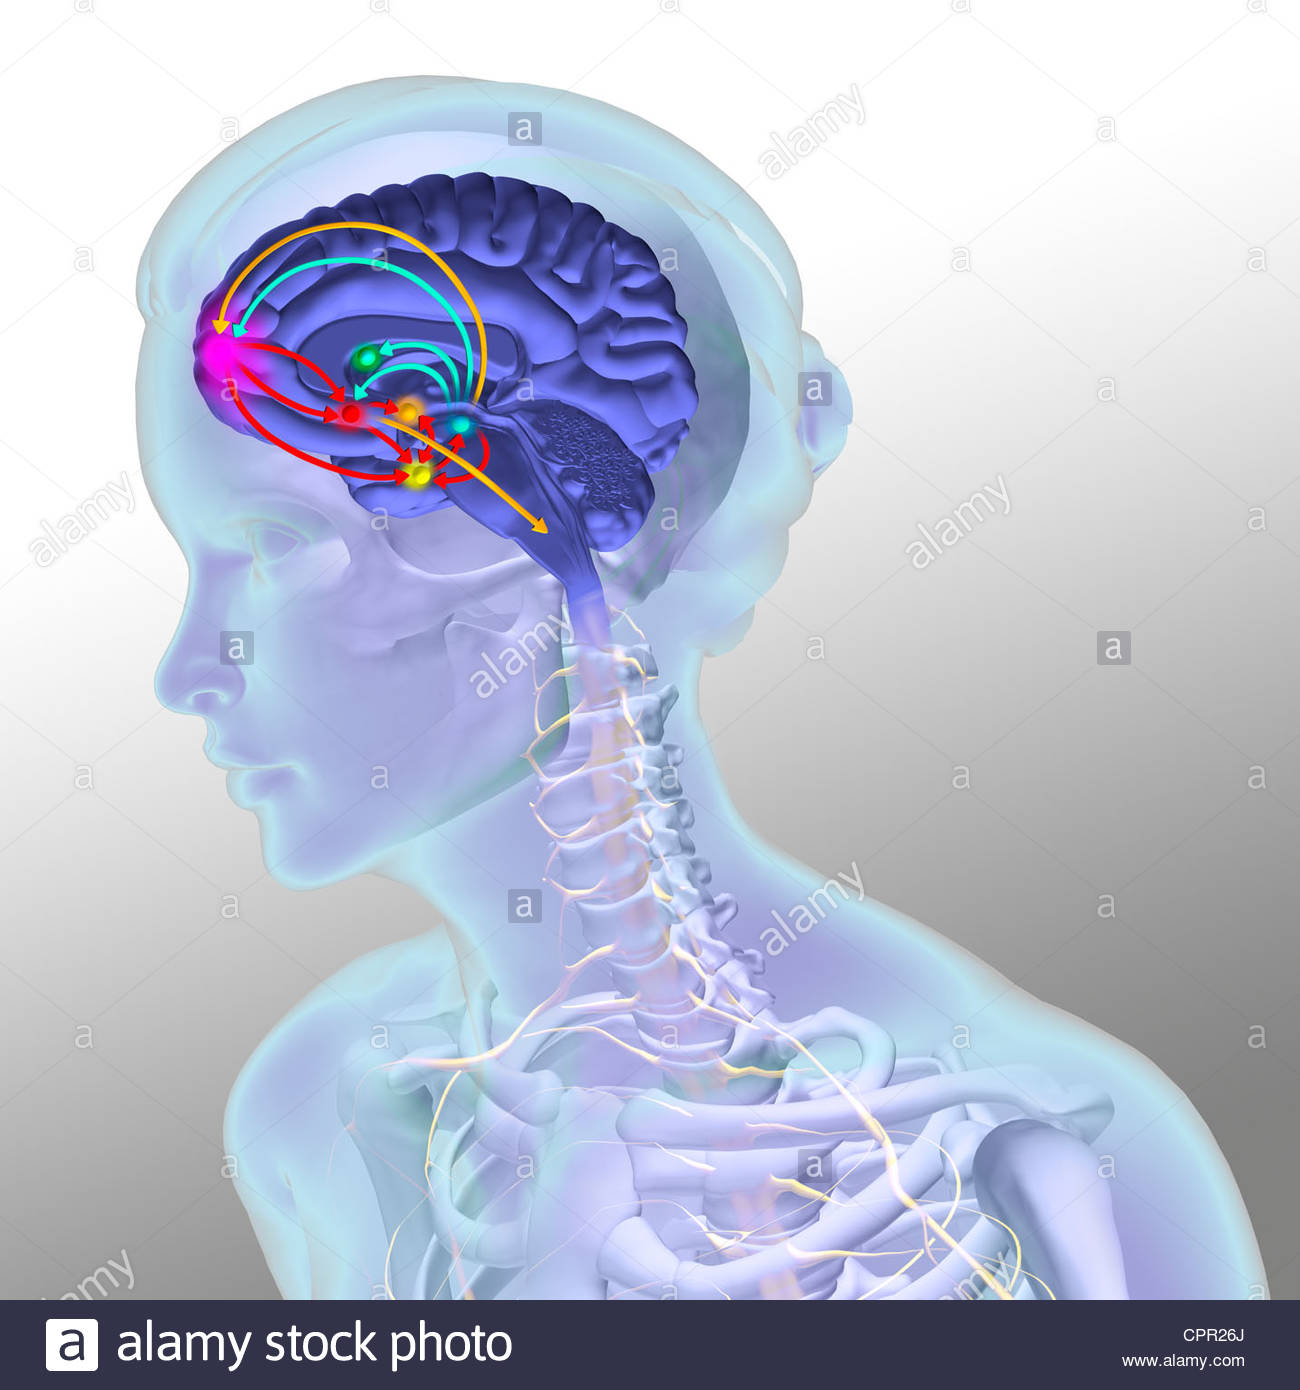 limbic system stock photos amp limbic system stock images